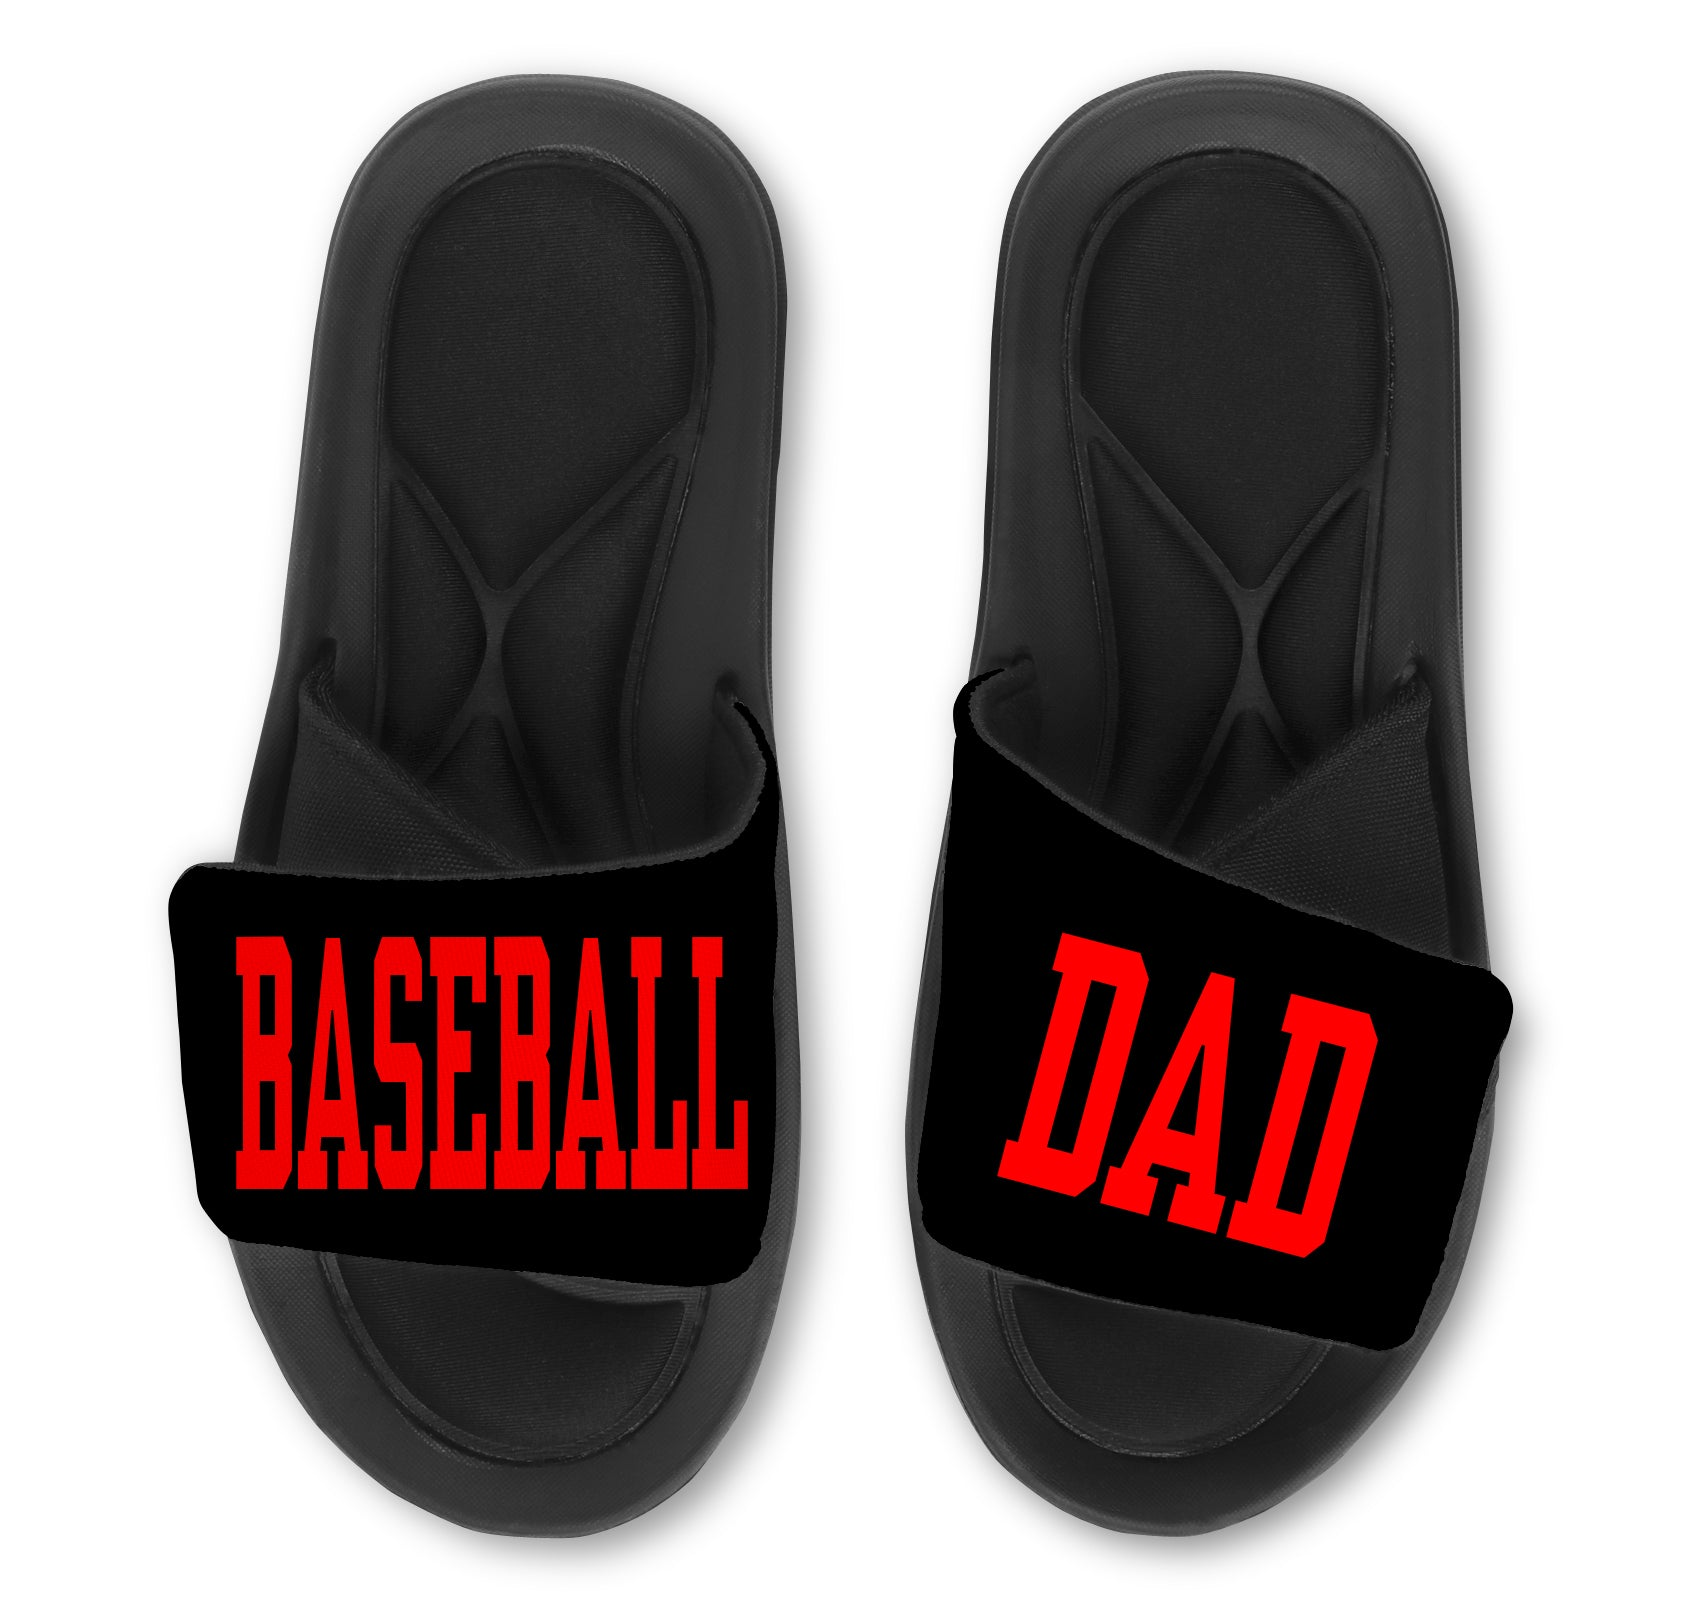 Baseball DAD Custom Slides / Sandals - Choose Your Colors